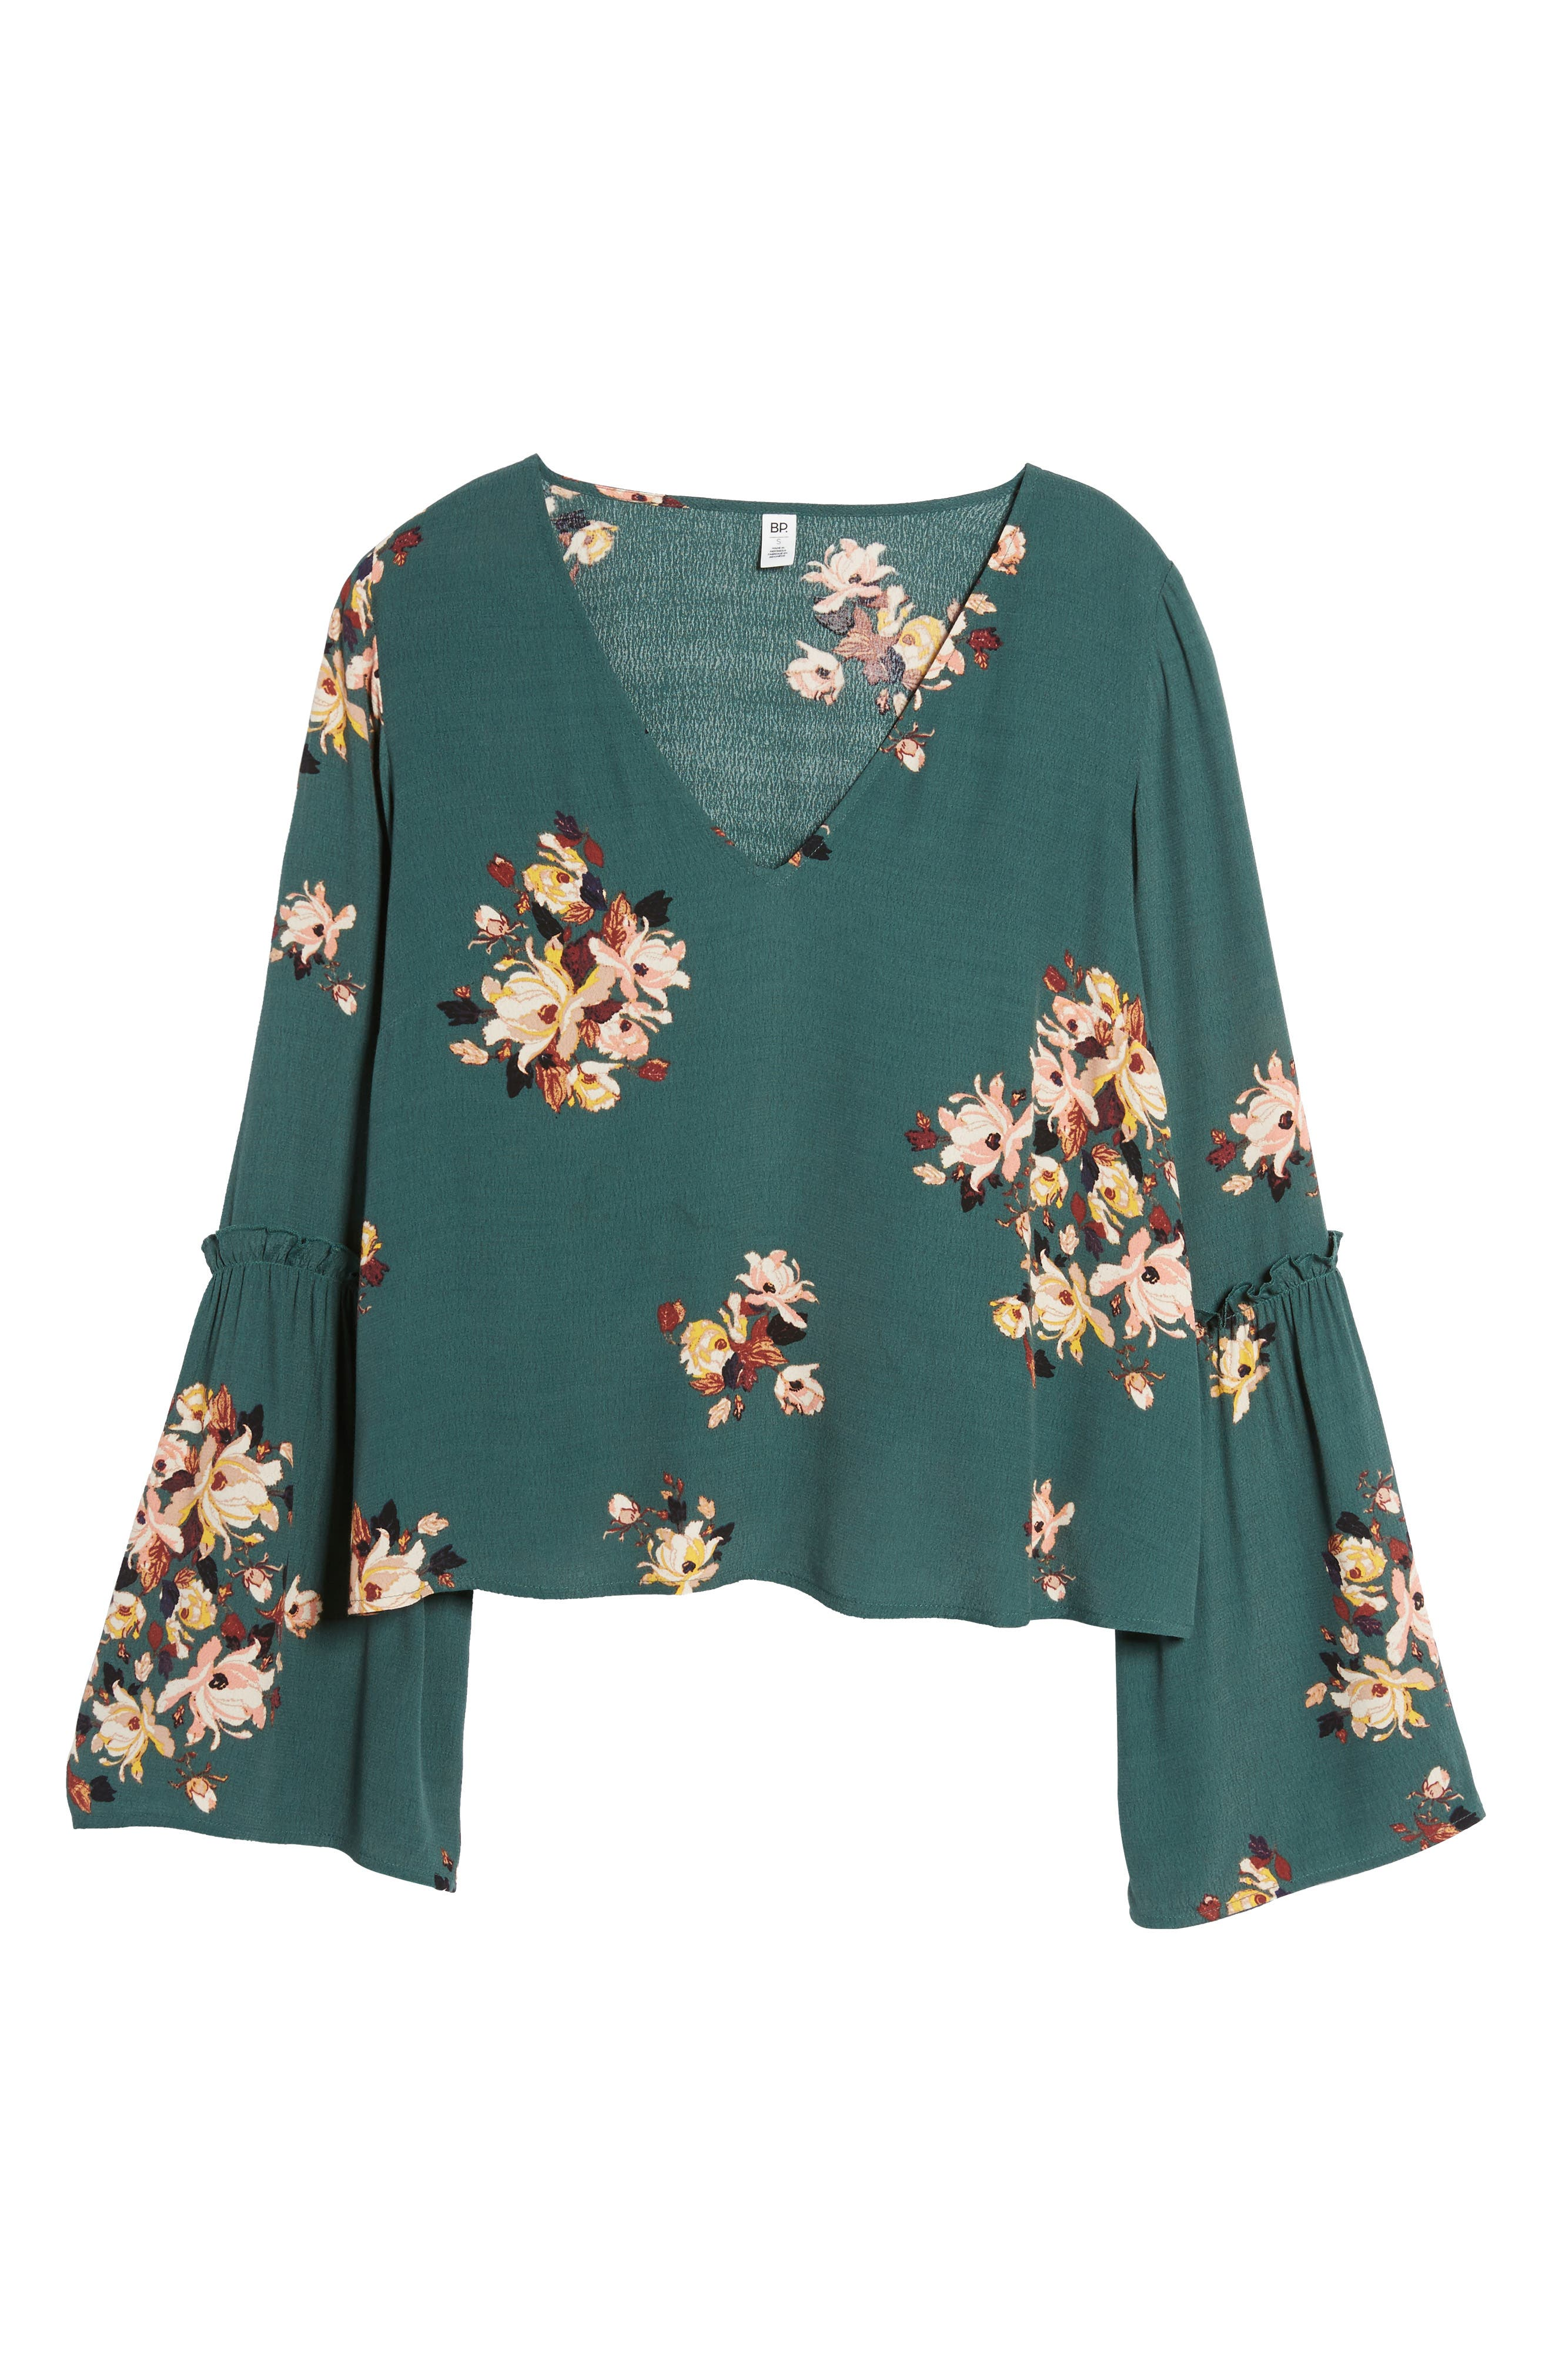 Bell Sleeve Blouse,                             Alternate thumbnail 7, color,                             Green Jungle Floral Bouquet